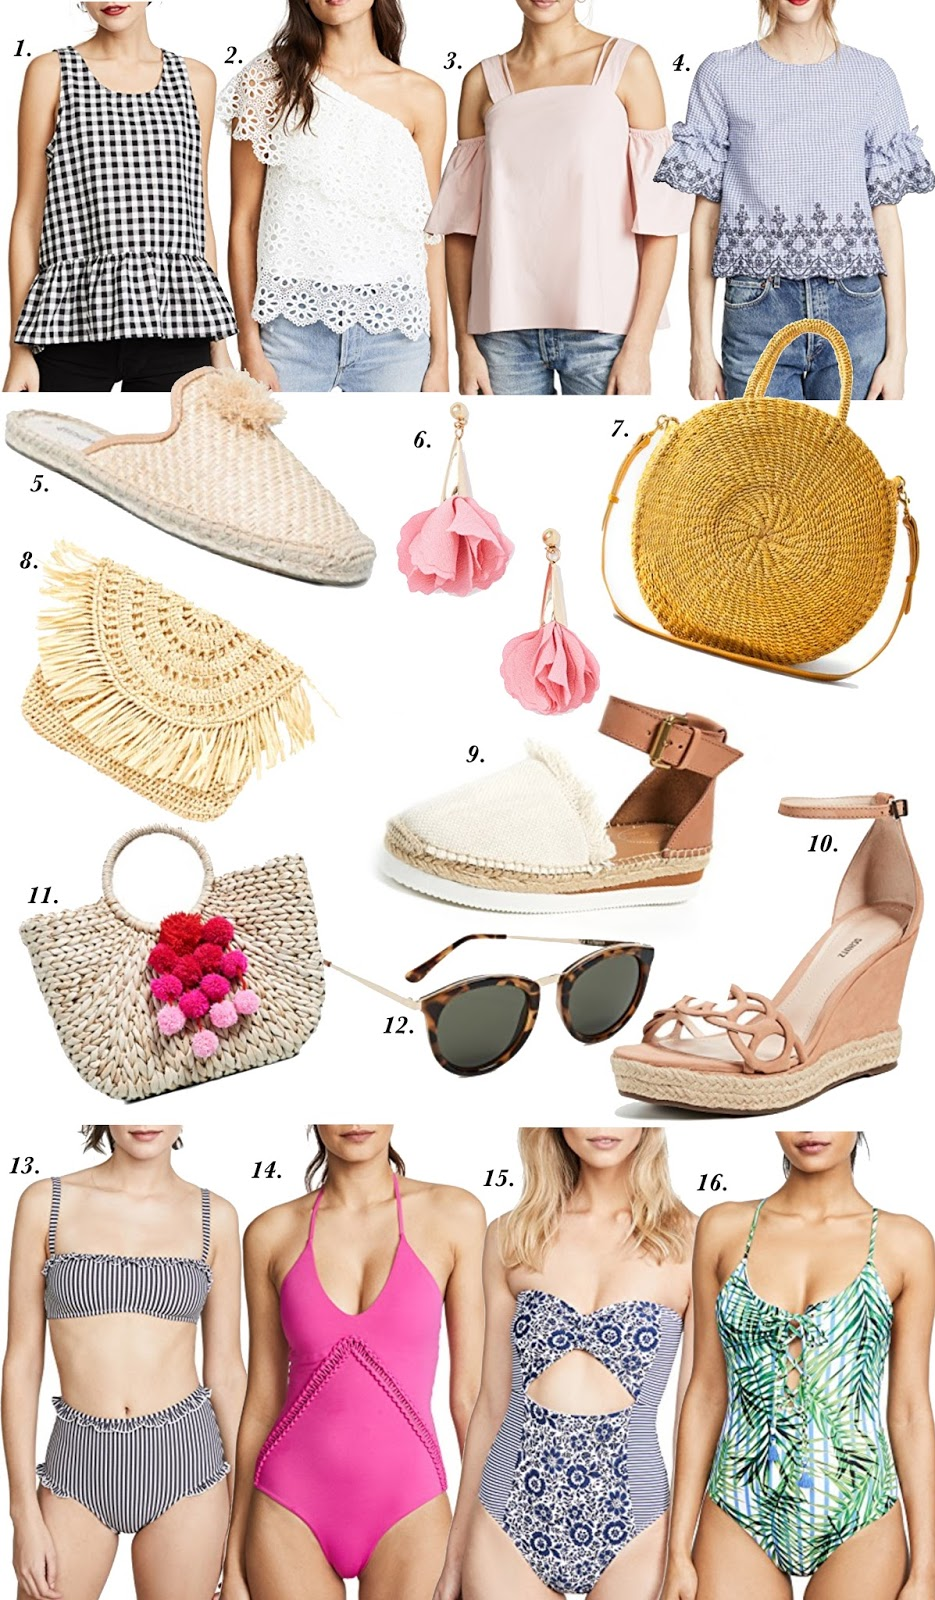 SHOPBOP Event of the Season Sale Picks (Up to 25% off) - Something Delightful Blog